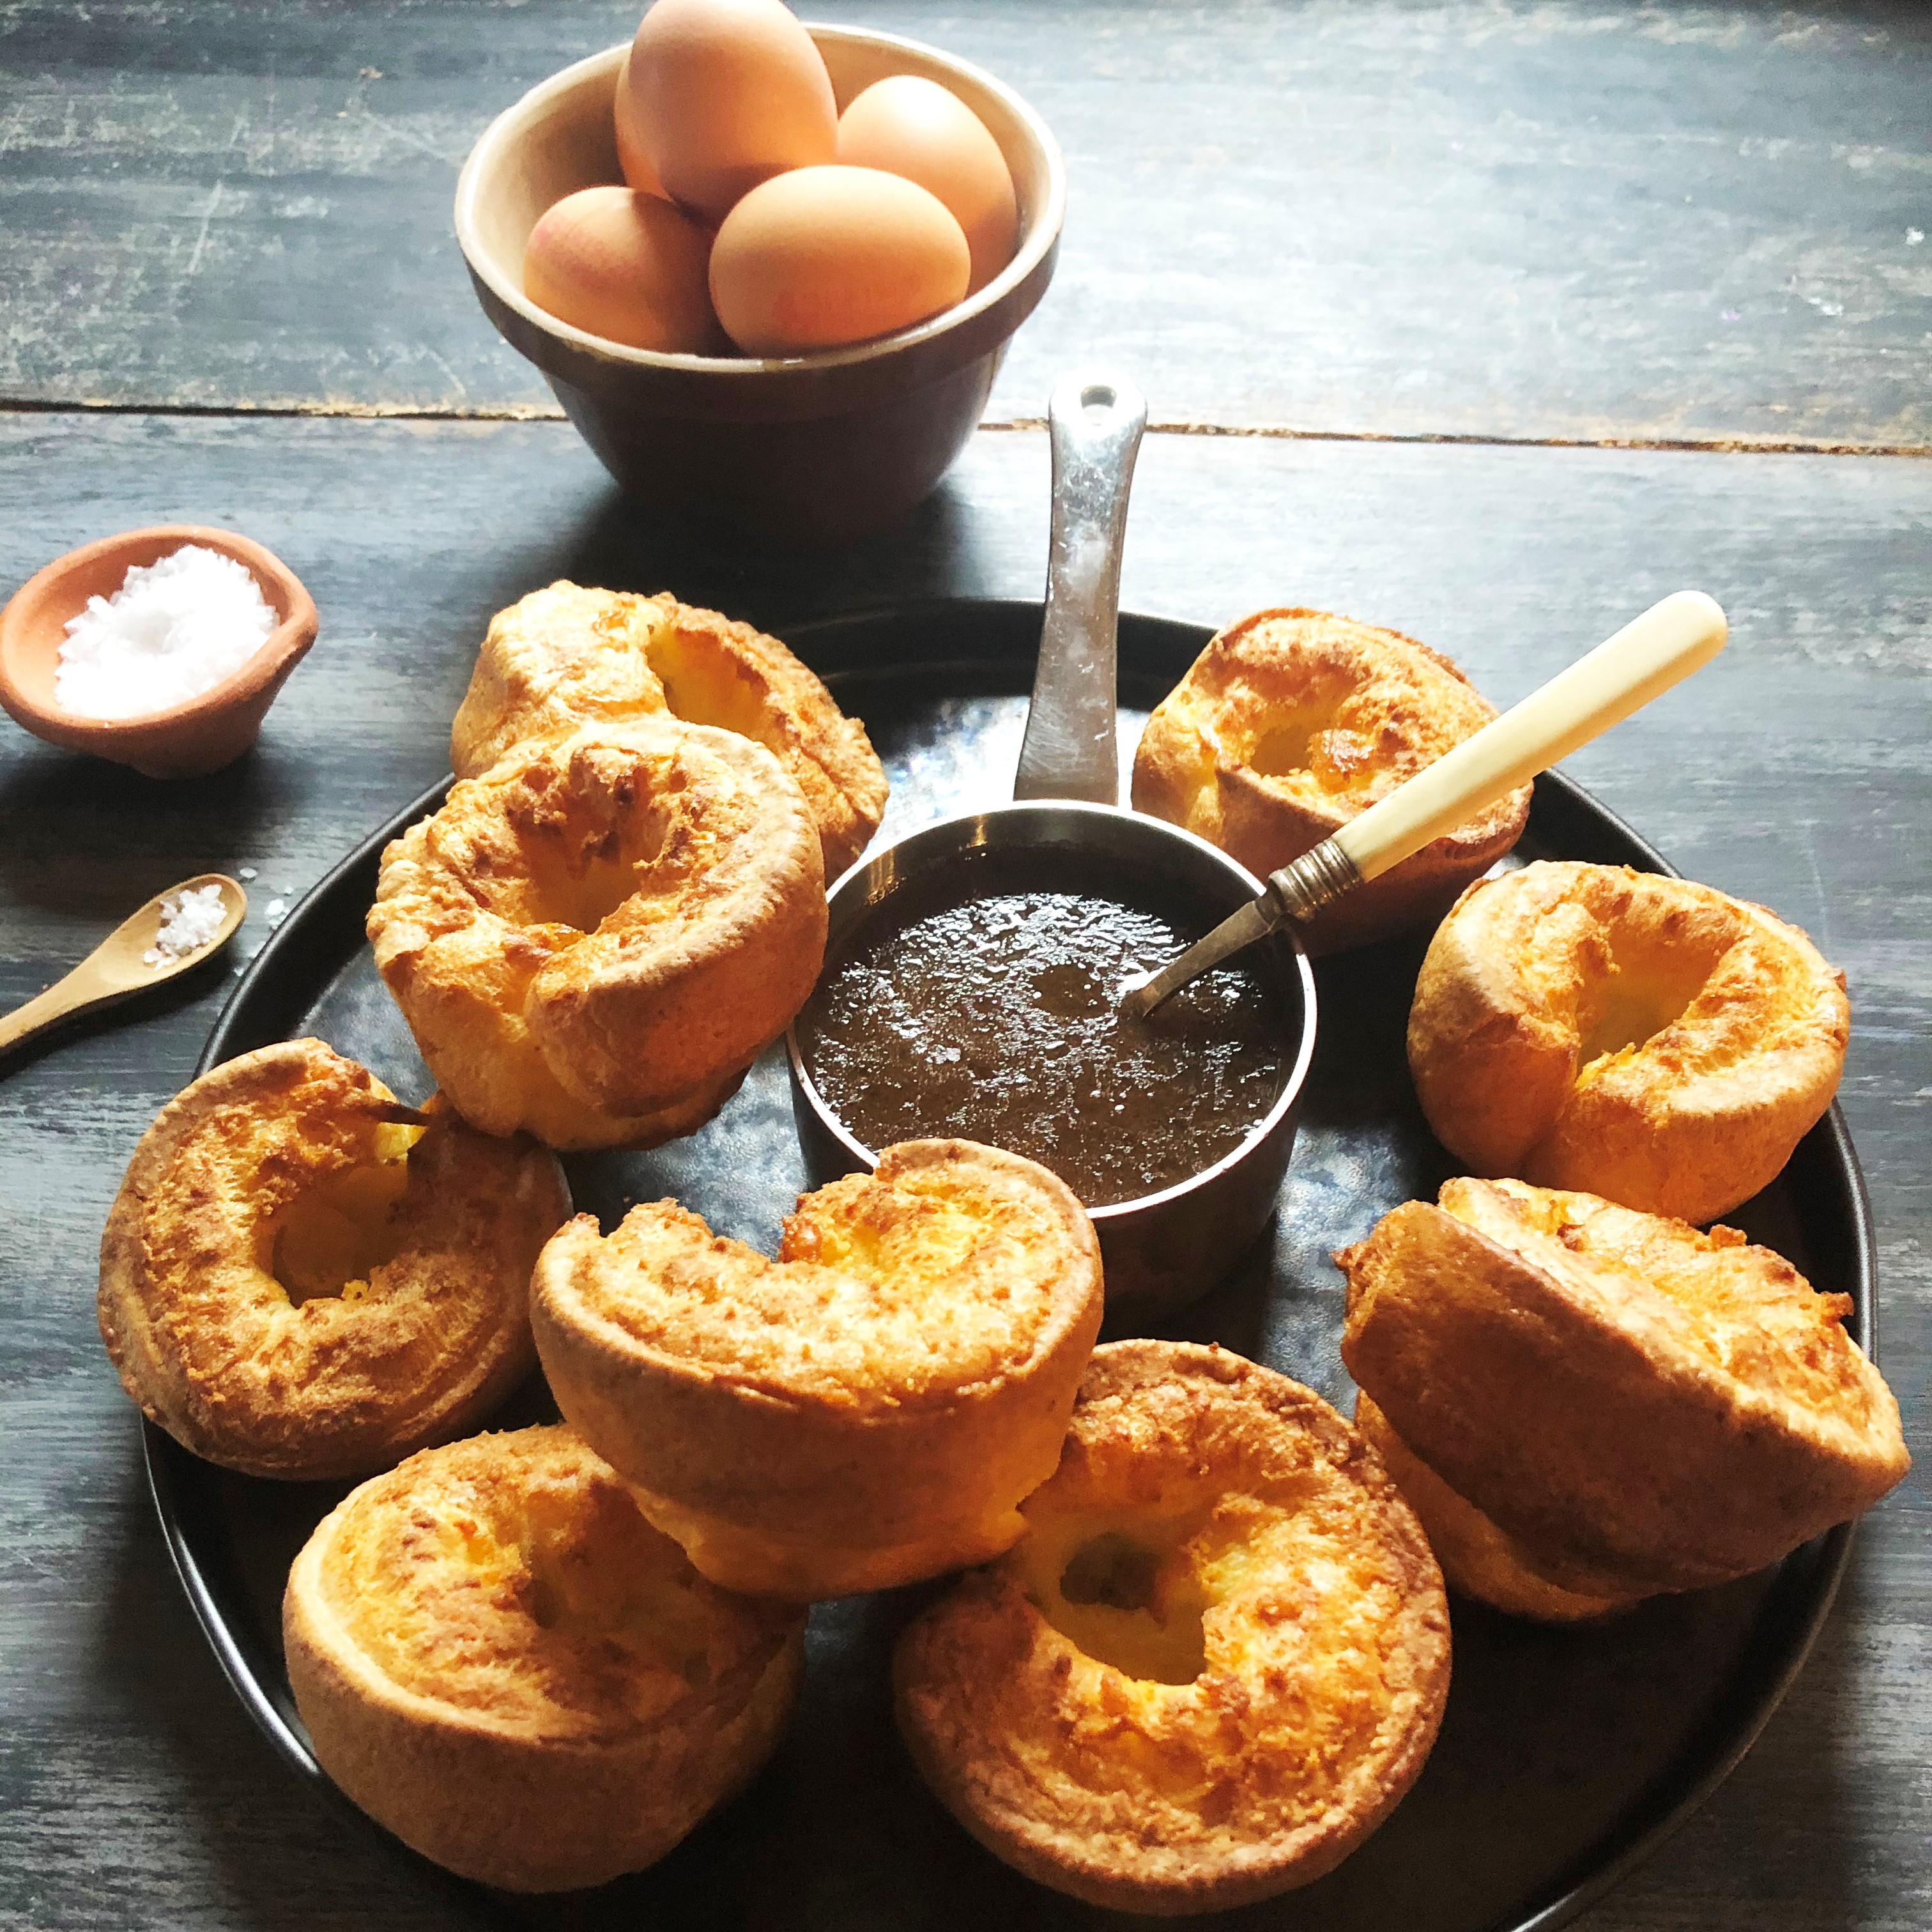 Fairburn's Perfect Yorkshire Puddings